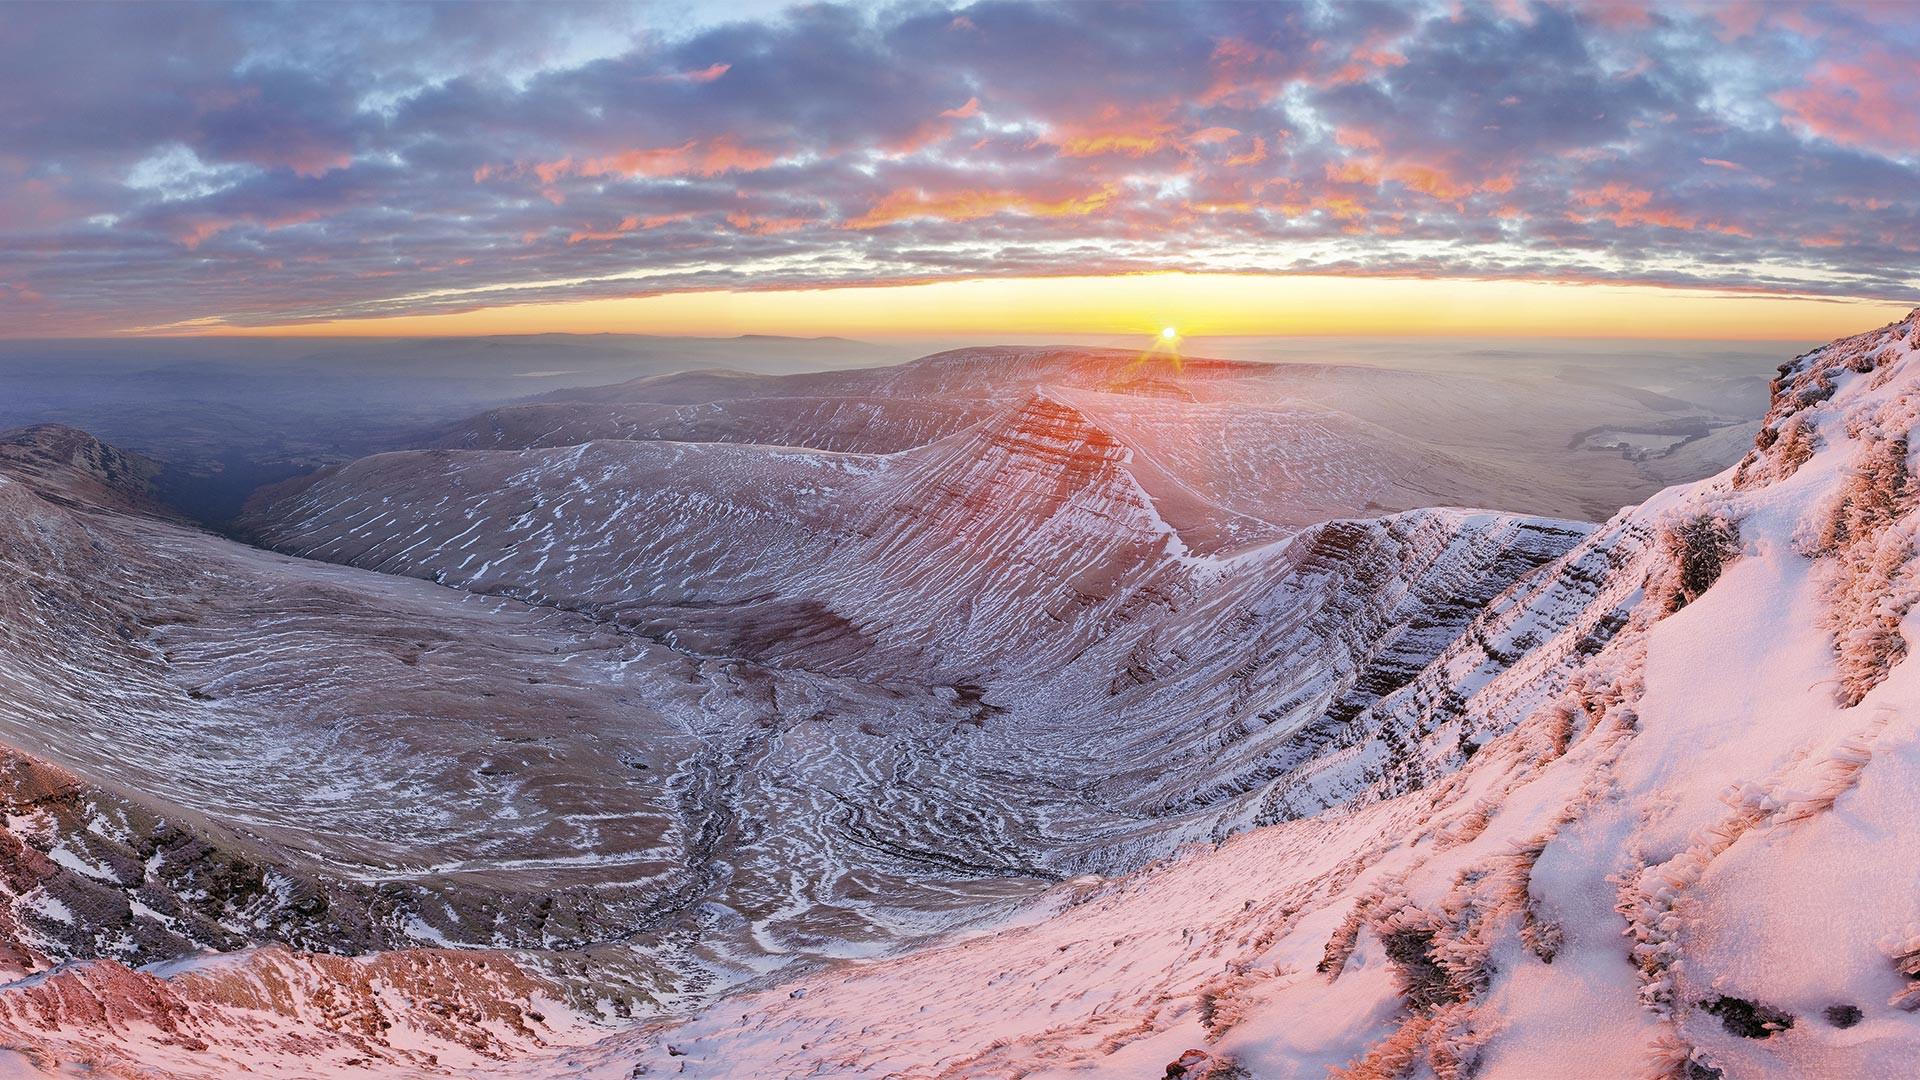 'Pen y Fan', Brecon Beacons, Wales